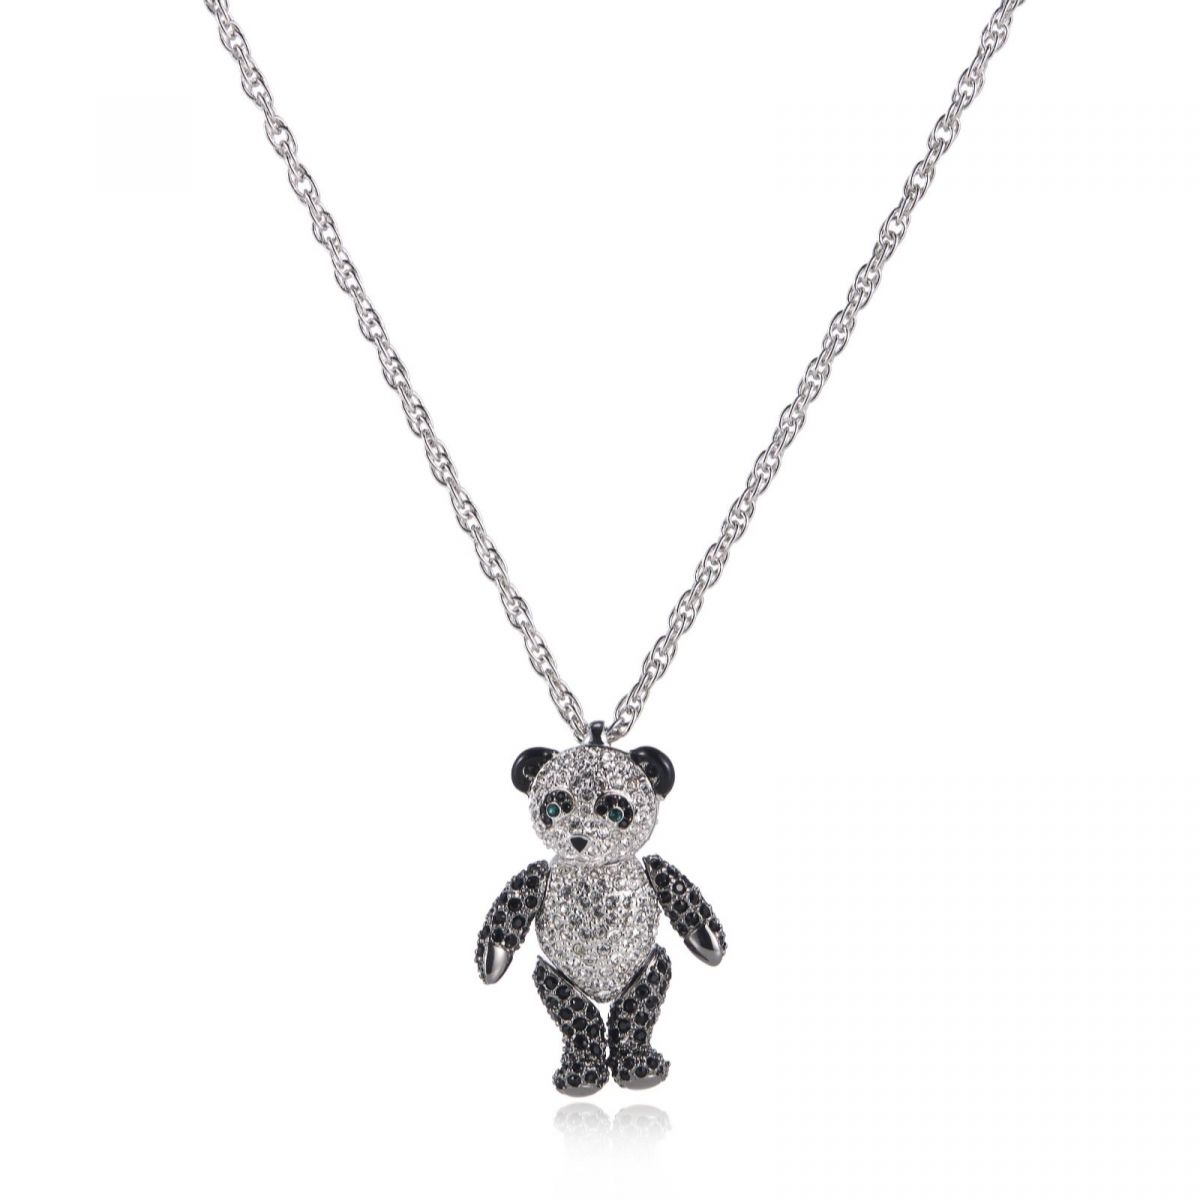 Panda Crystal Necklace